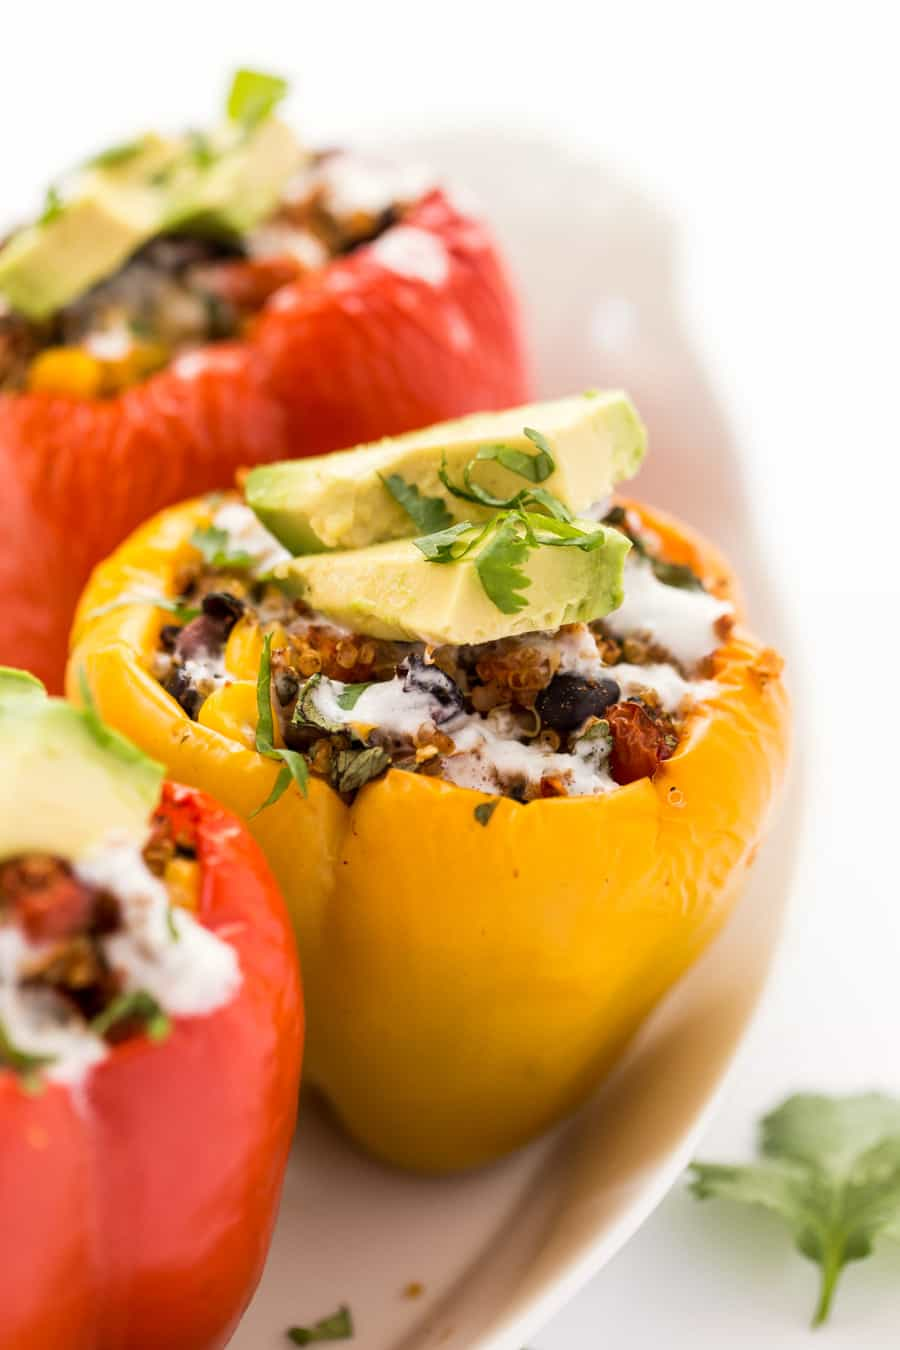 A close-up of Mexican Quinoa Stuffed Peppers. They are resting on a white plate and covered in herbs and avocado.